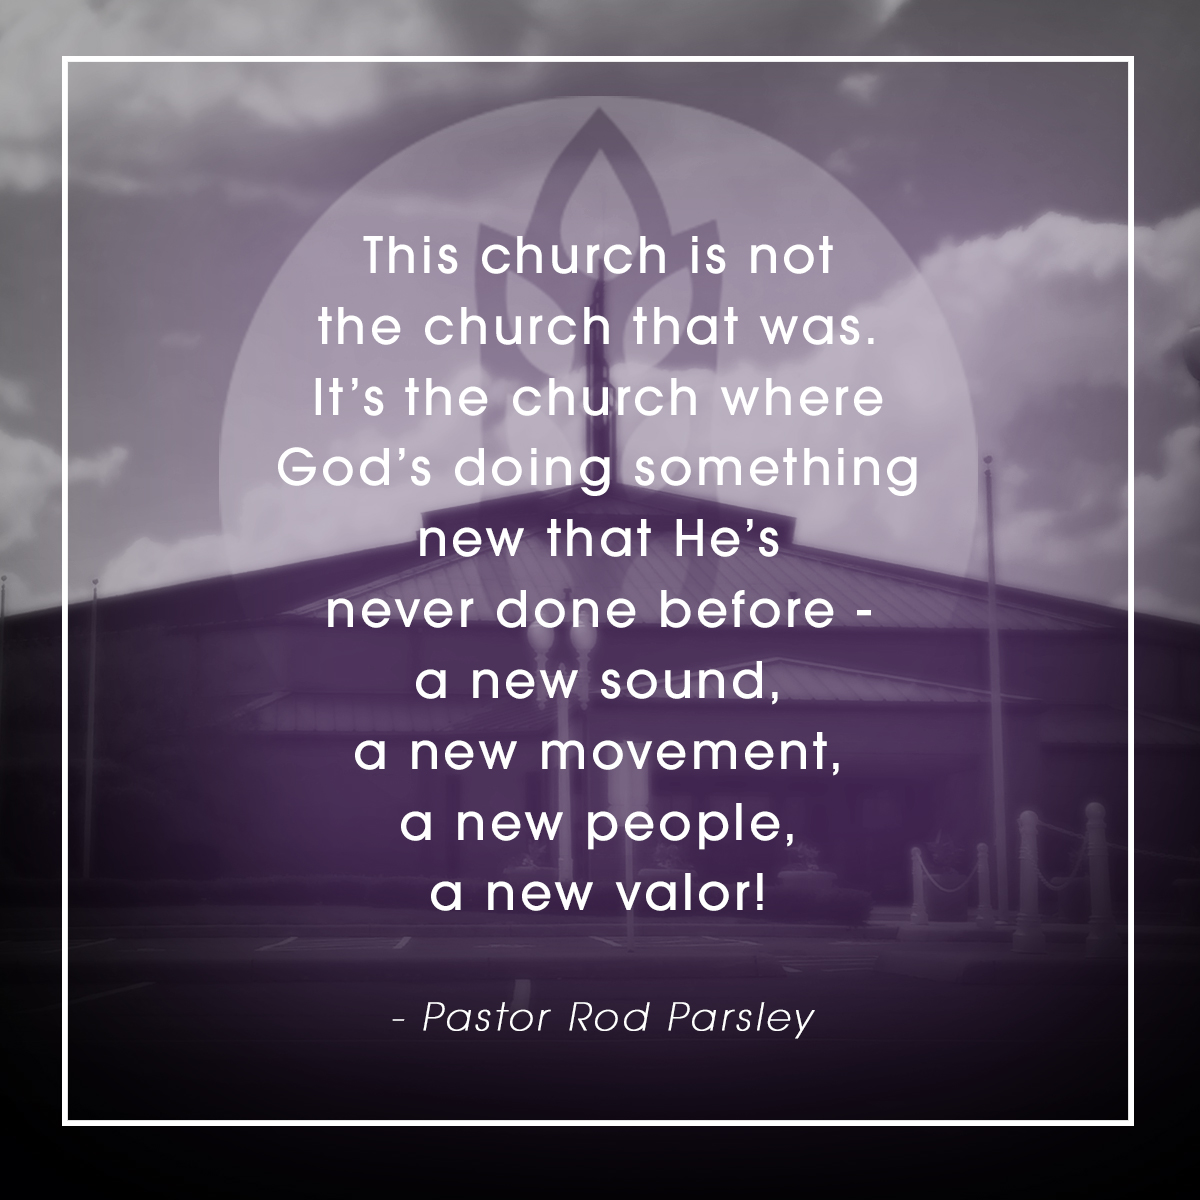 """This church is not the church that was. It's the church where God's doing something new that He's never done before – a new sound, a new movement, a new people, a new Valor!"" – Pastor Rod Parsley"